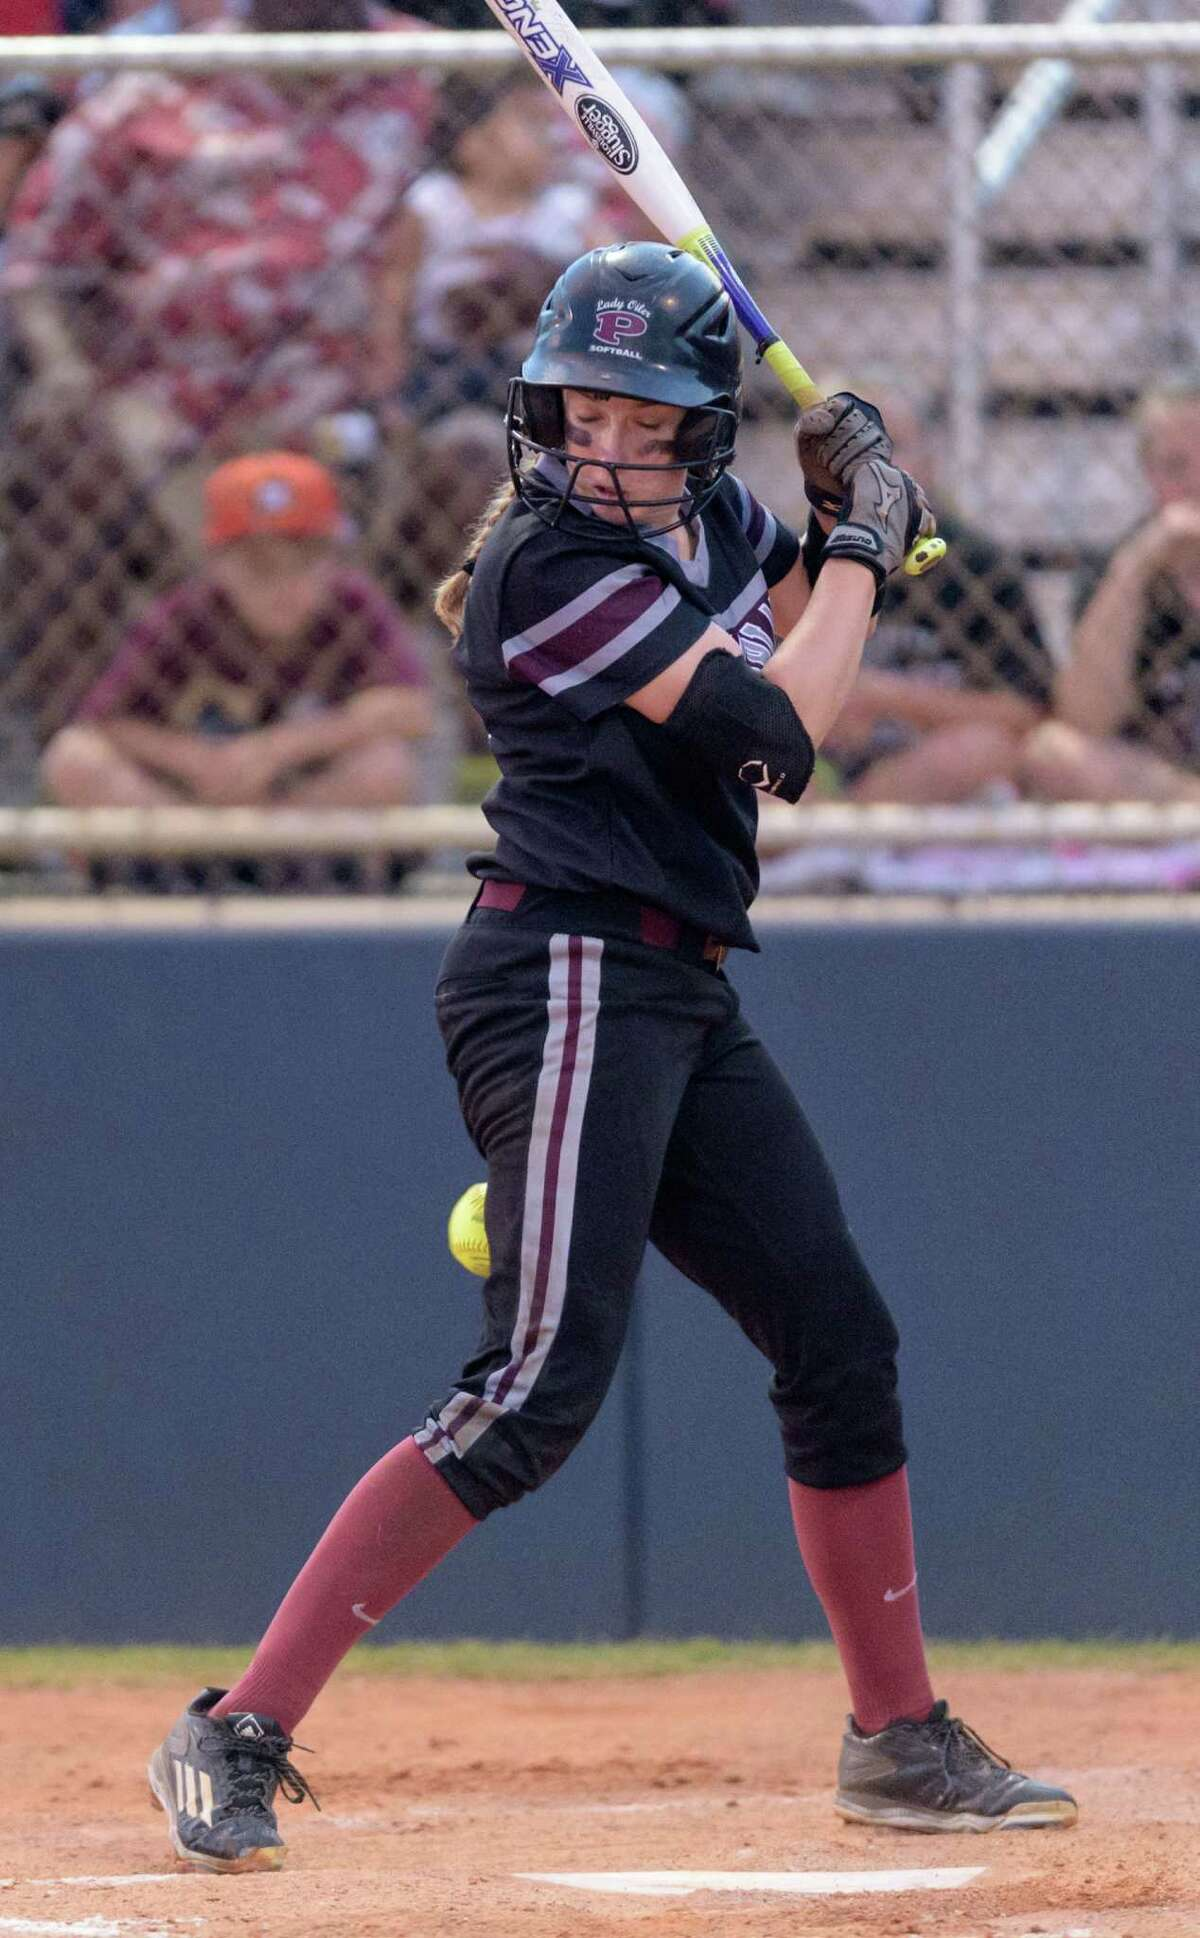 Madison Clements (4) of the Pearland Lady Oilers is hit by a pitch in the second inning against the Deer Park Lady Deer in the Regional Quarterfinals on Friday, May 13, 2016 at the Dawson High School ballpark.